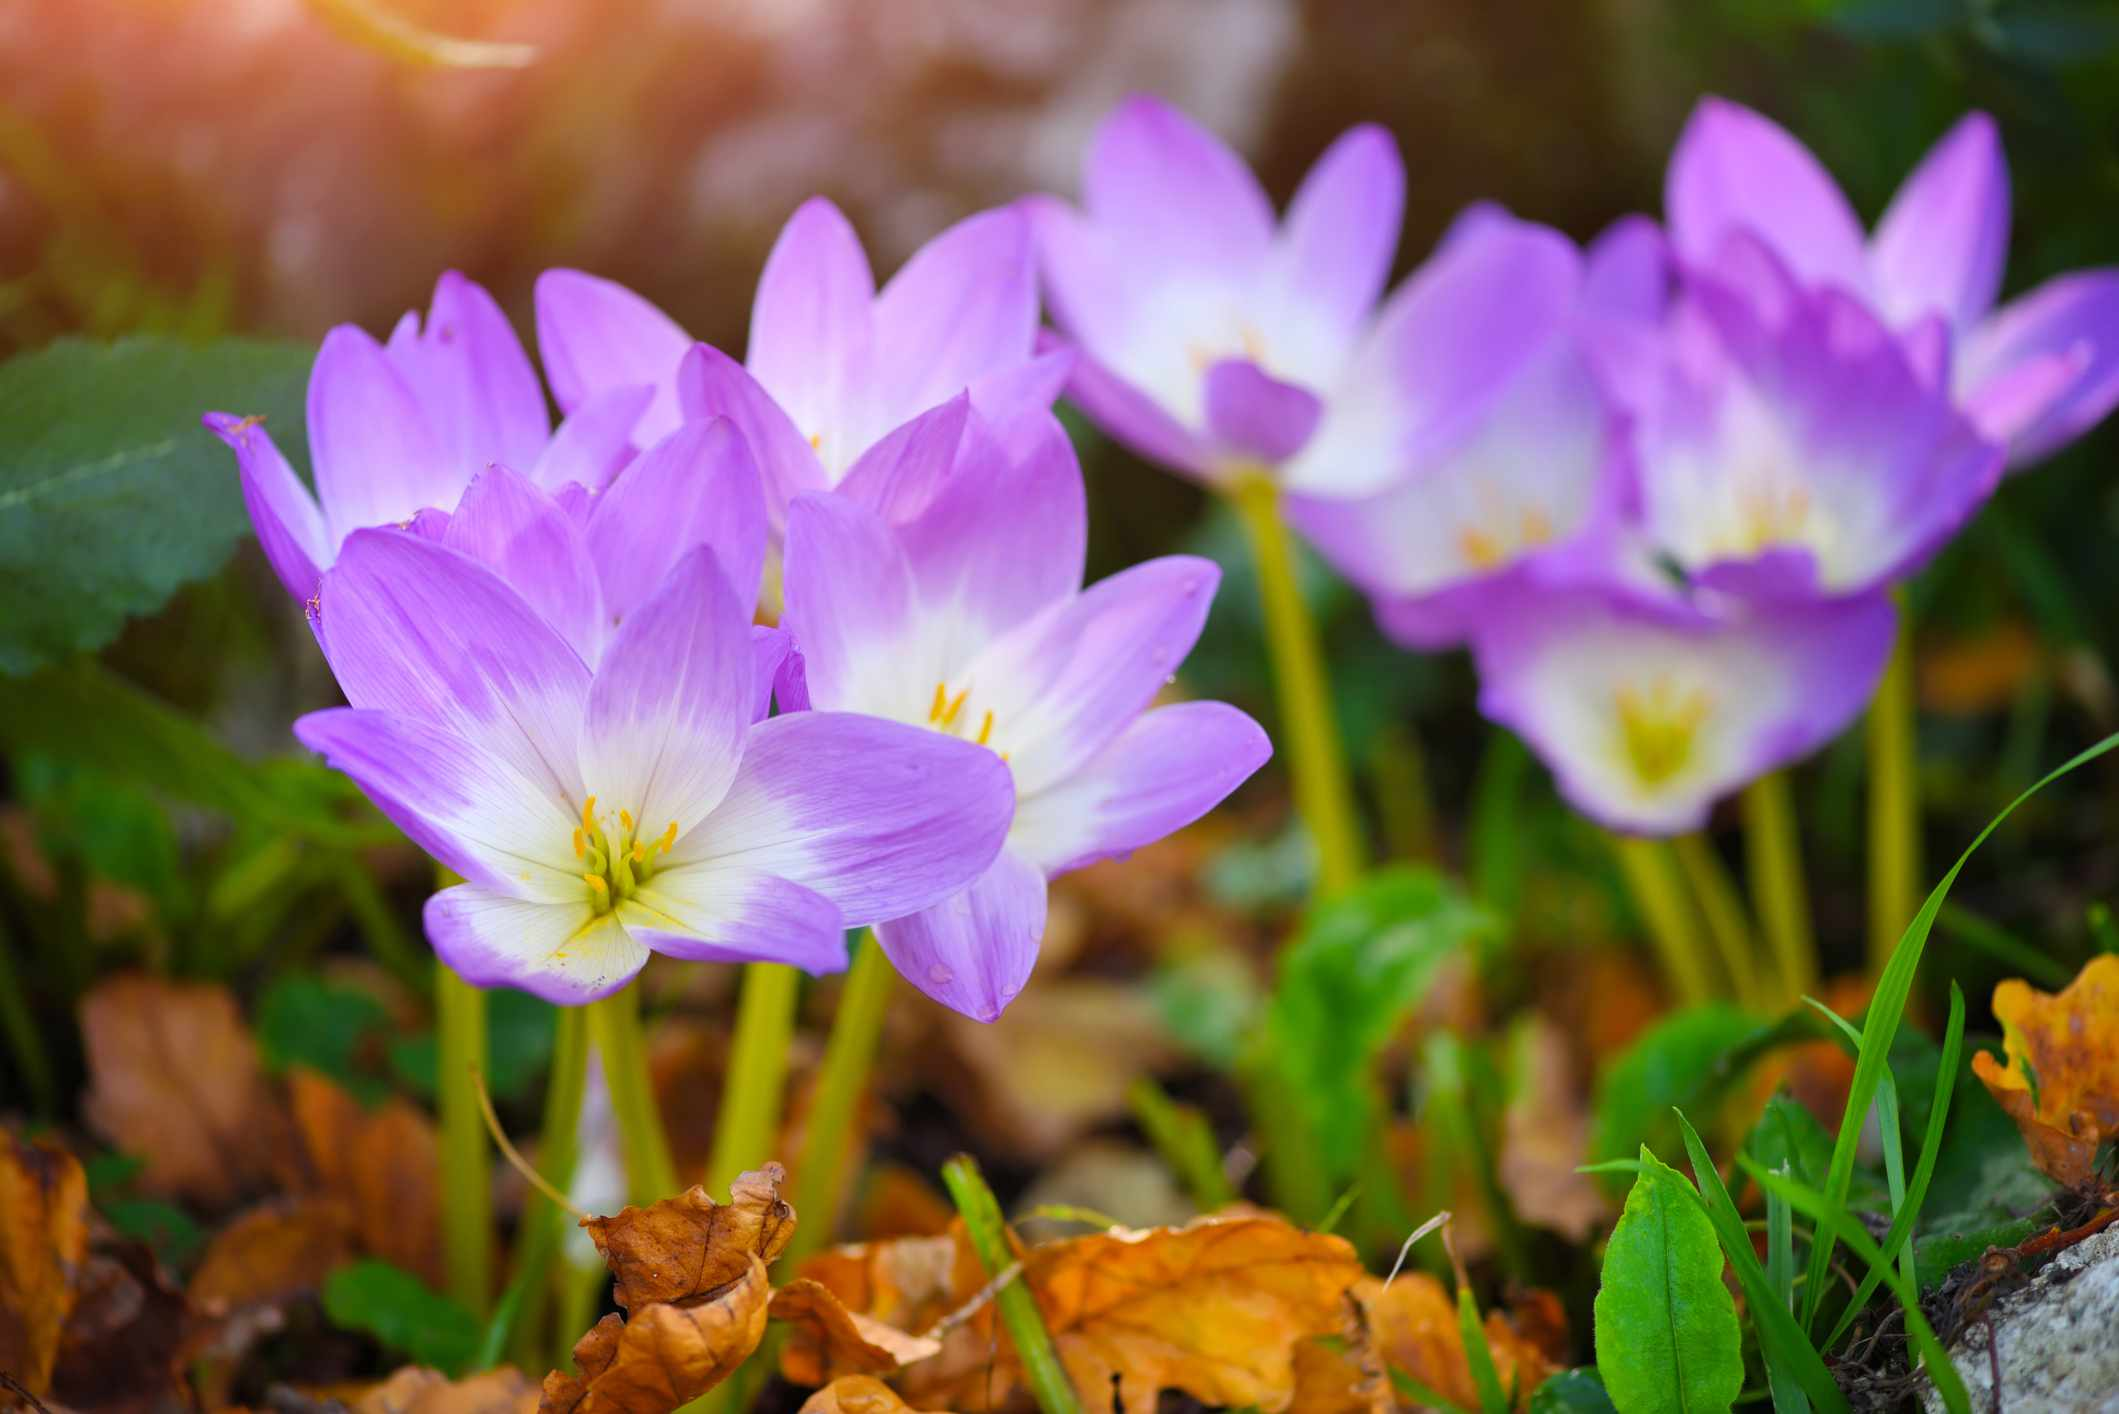 Nice dewy flowers in the autumn (Colchicum autumnale)